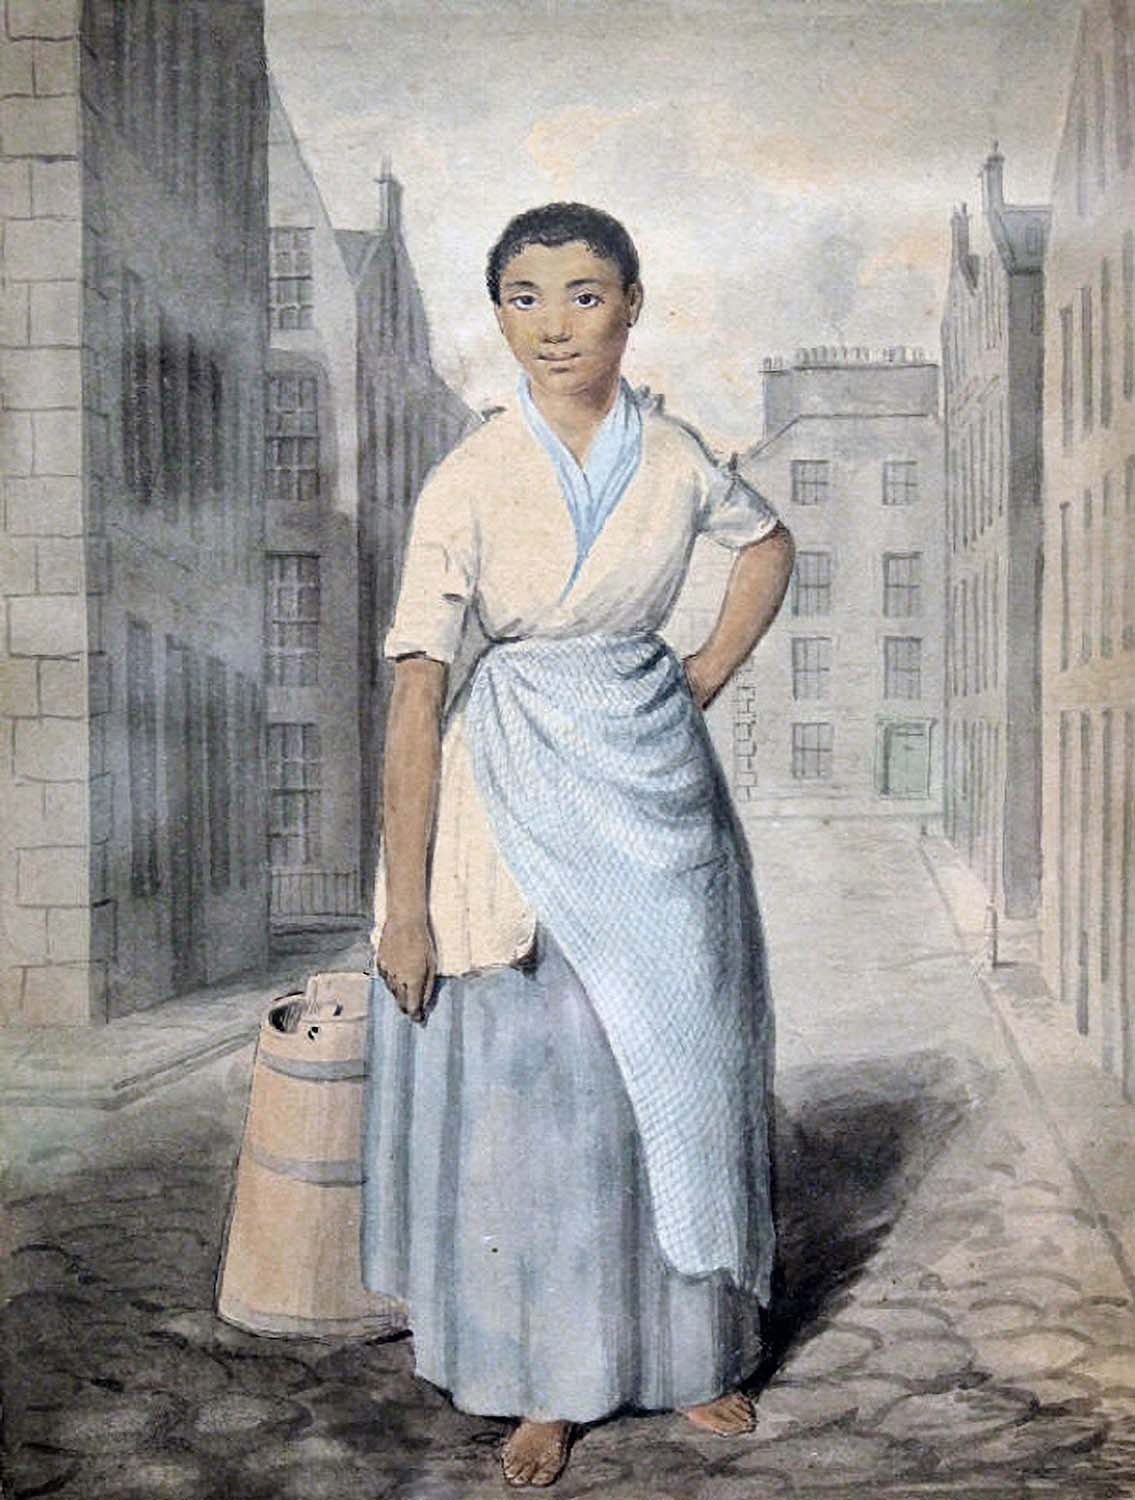 Edinburgh servant standing in a street, attributed to artist David Allan, c. 1780.